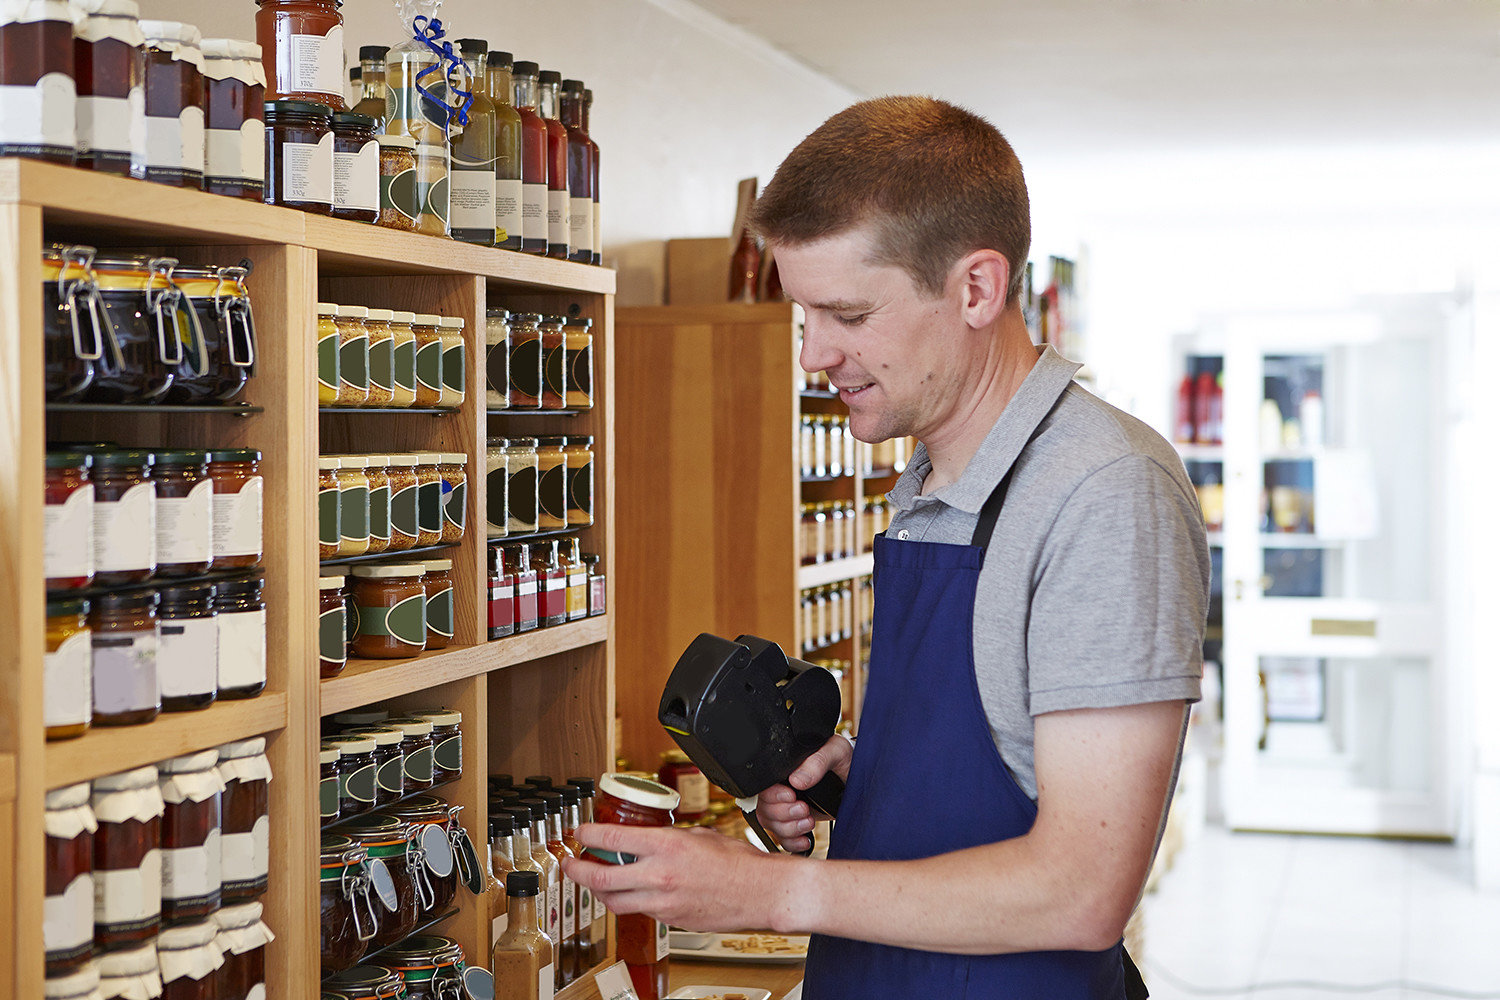 Retail Applications - Product Labeling and Tracking Australia CipherLab world leader in AIDC solutions